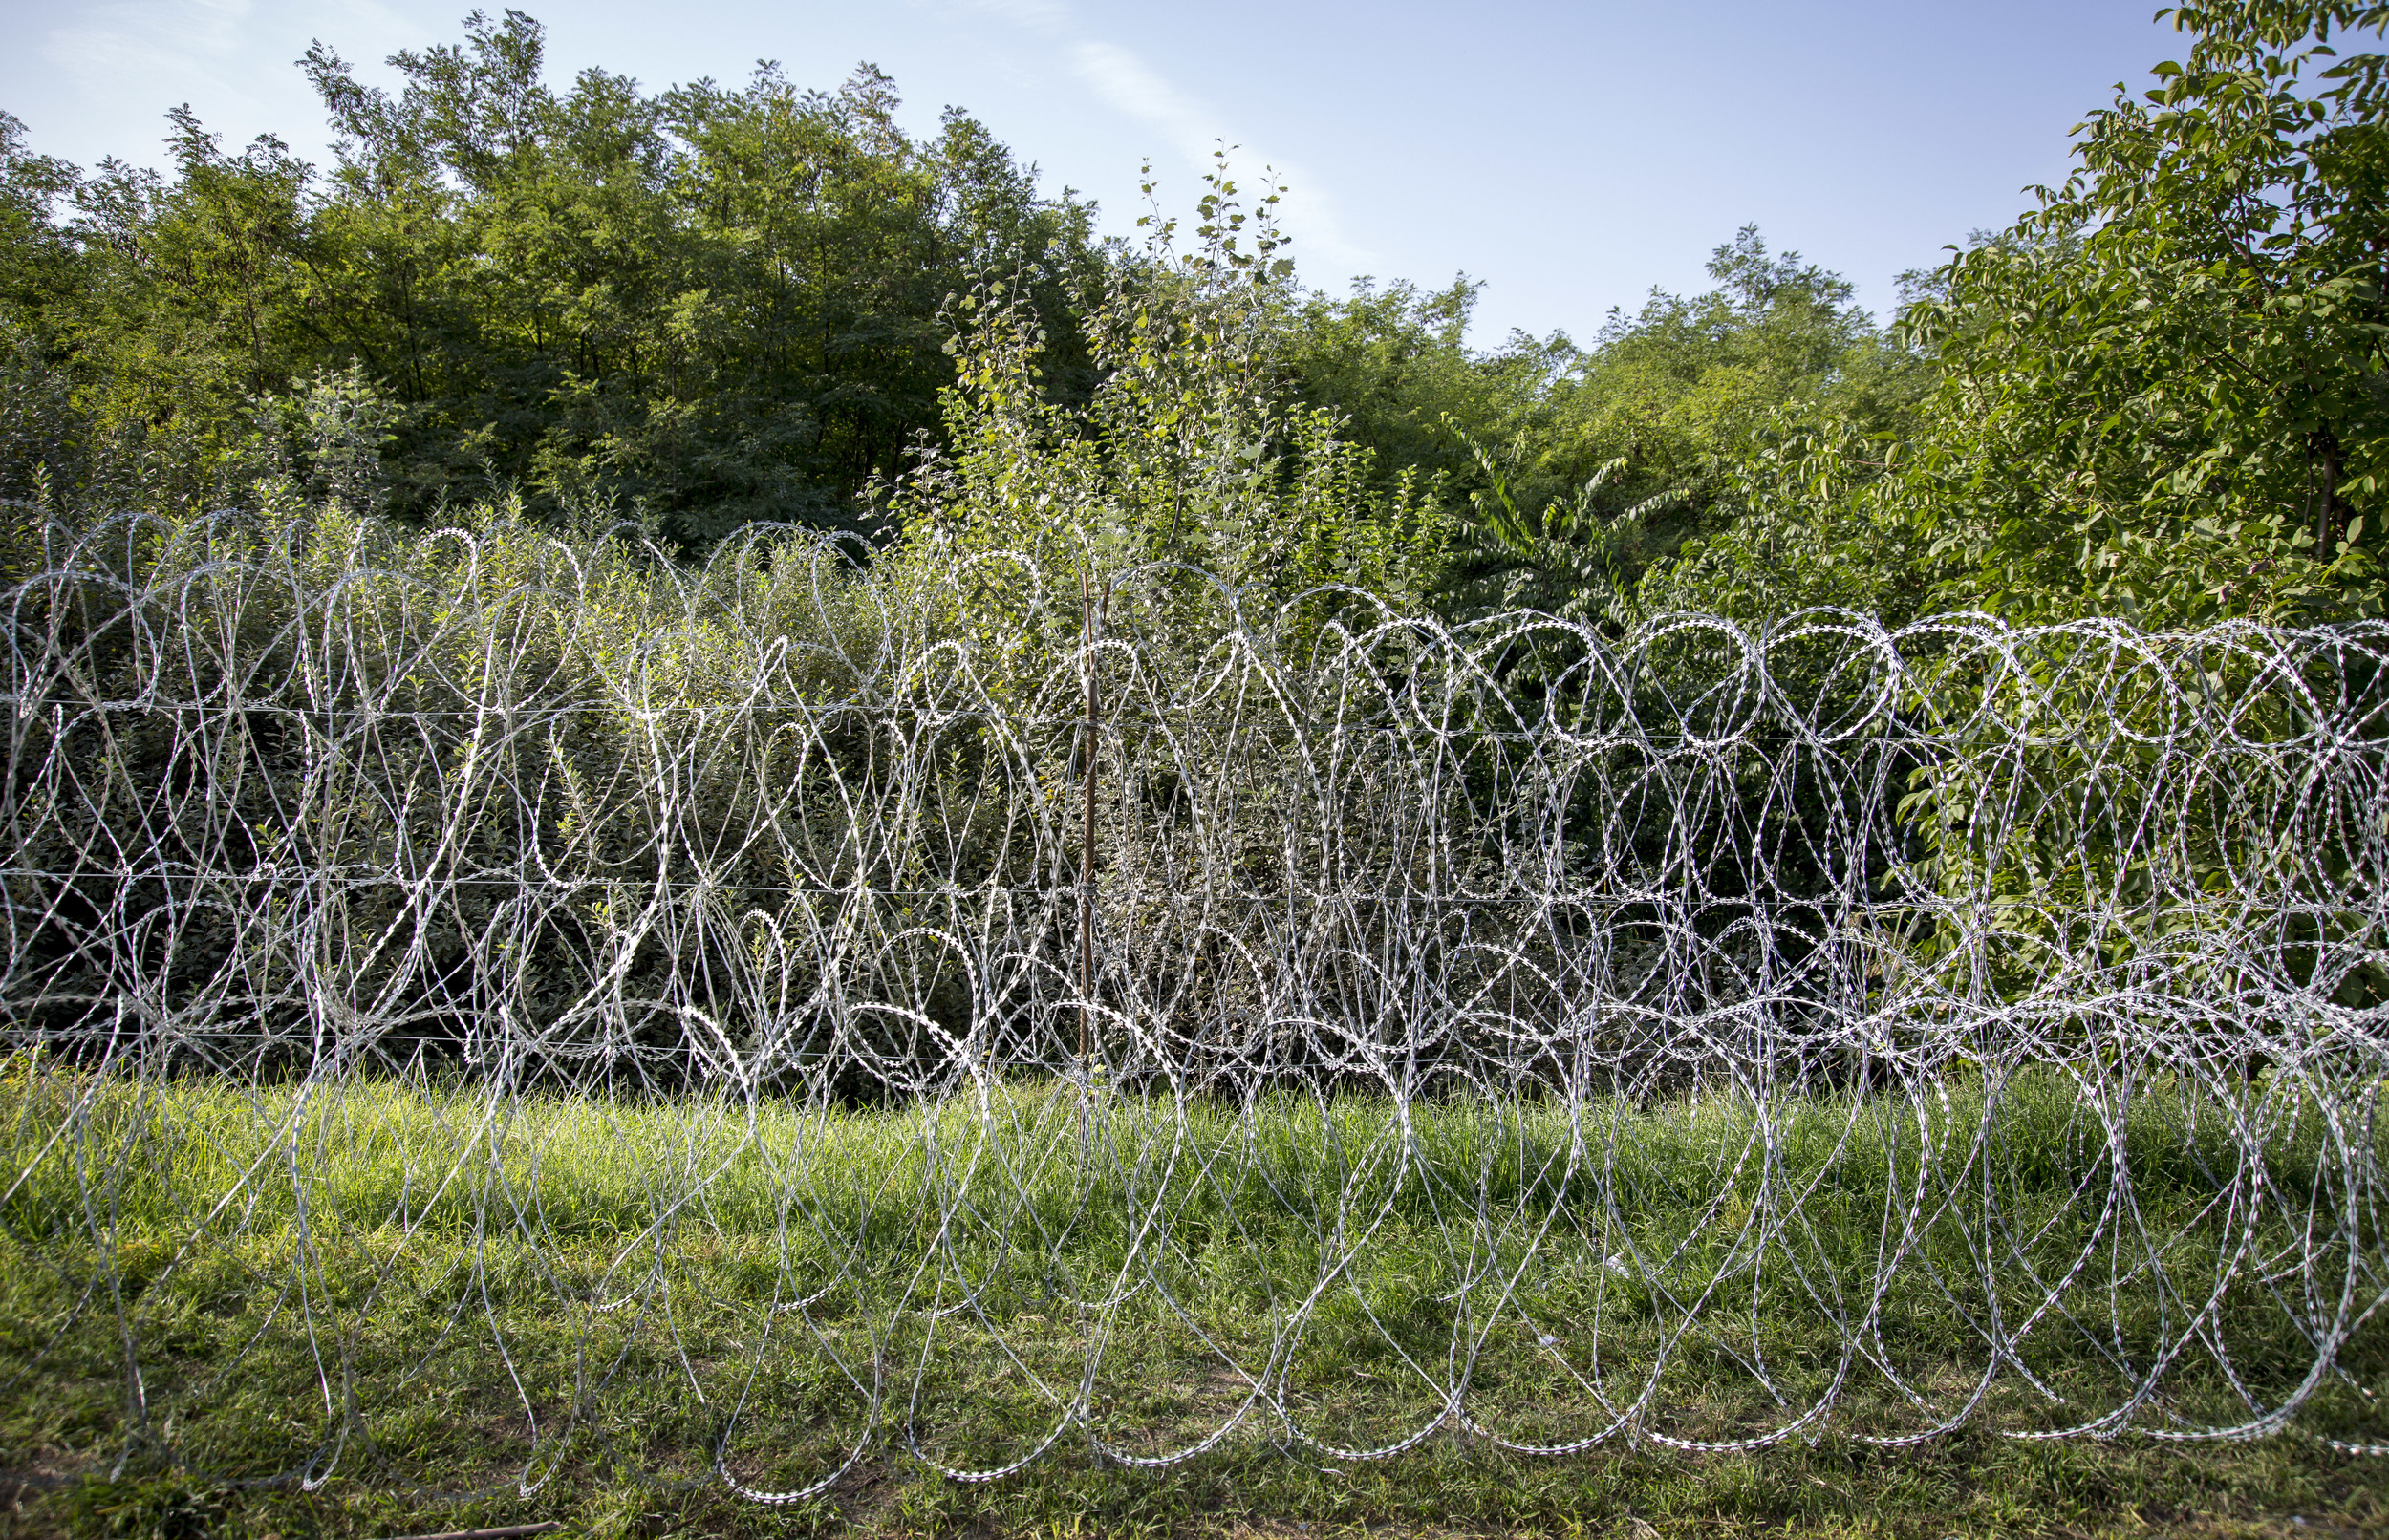 Closer to the official border crossing is only used barbed wire to keep refugees out.